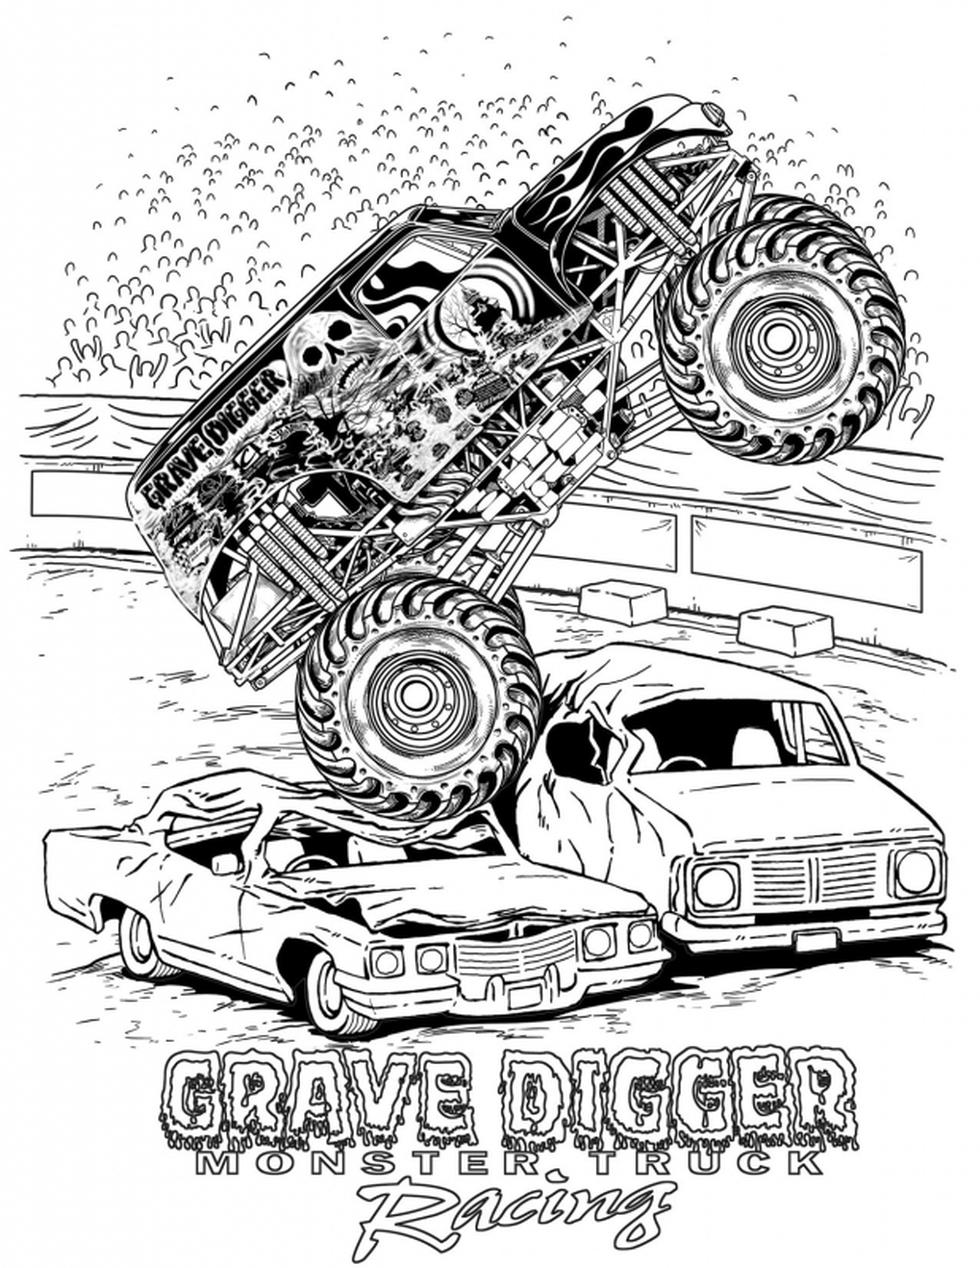 grave digger monster truck coloring pages grave digger monster truck coloring page free printable truck pages digger coloring monster grave